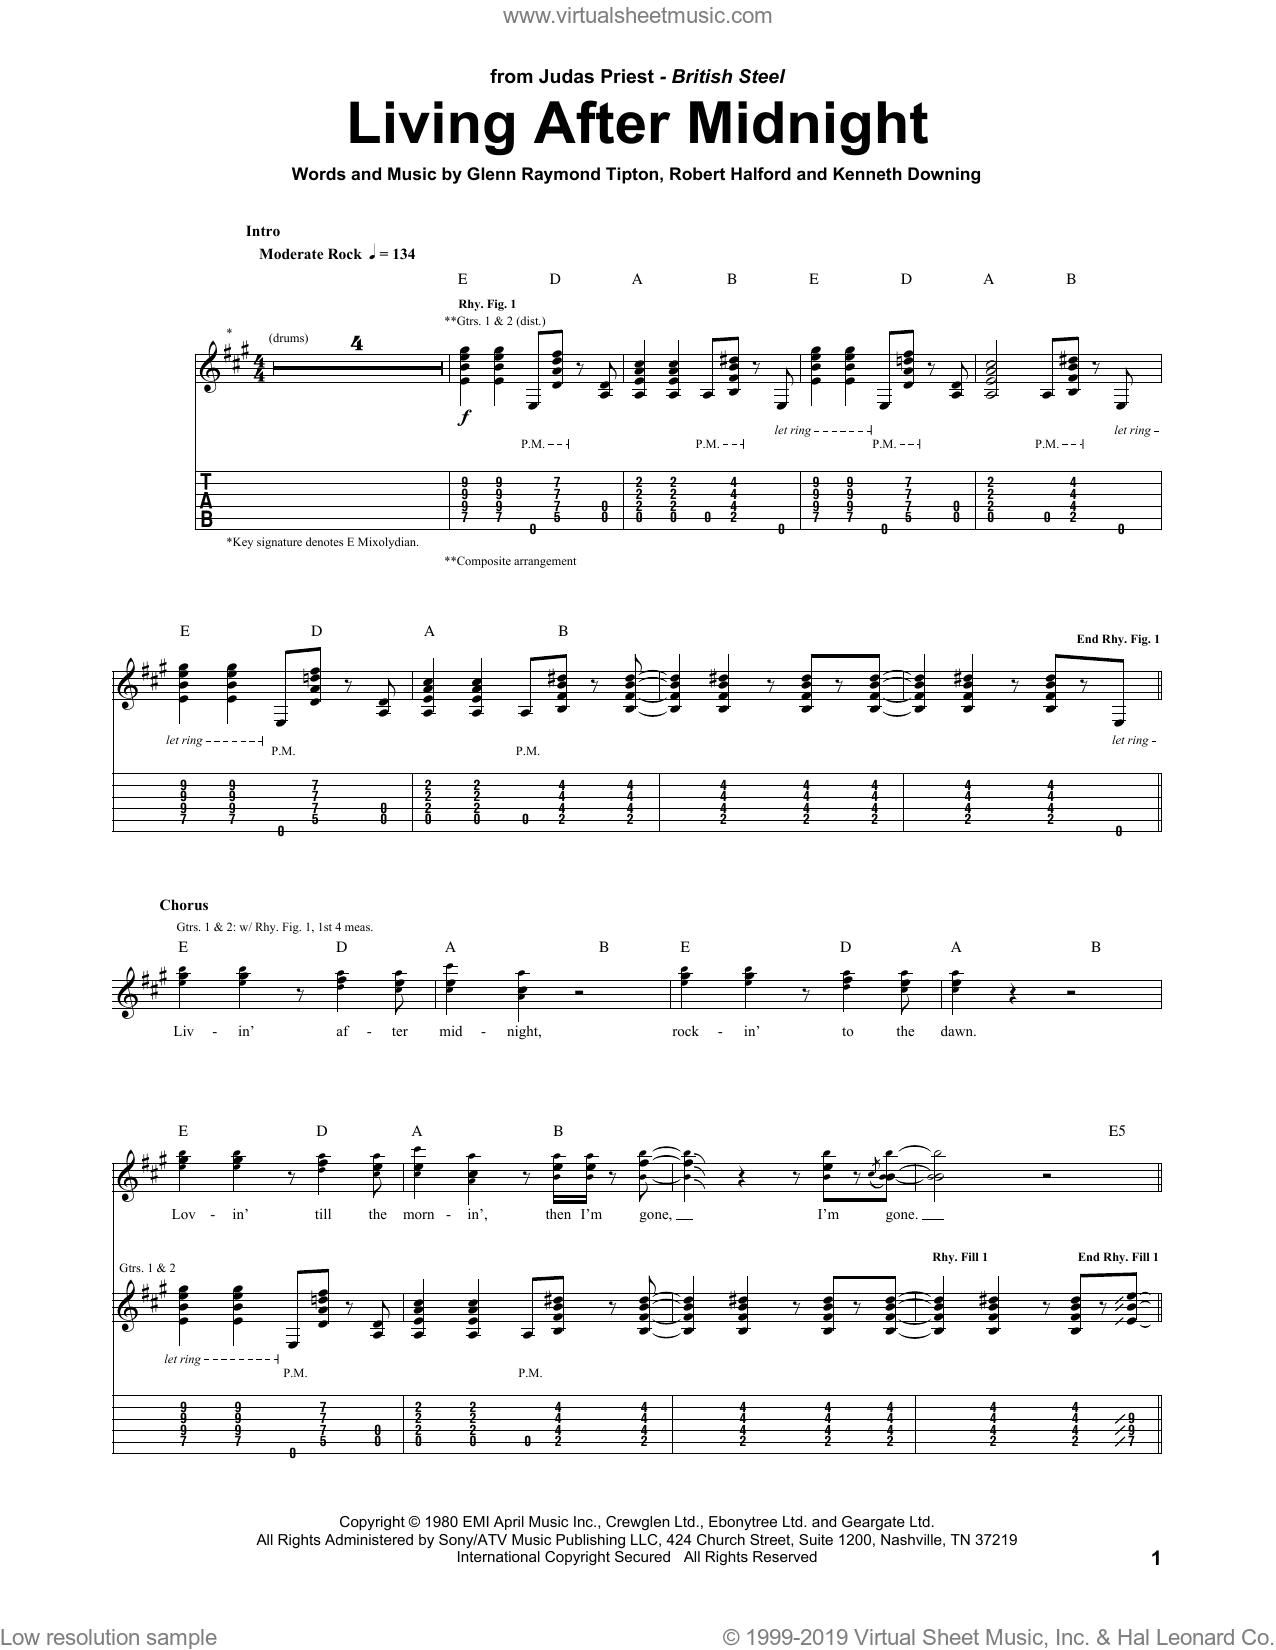 Living After Midnight sheet music for guitar (tablature) by Judas Priest, Glenn Tipton, K.K. Downing and Rob Halford, intermediate skill level